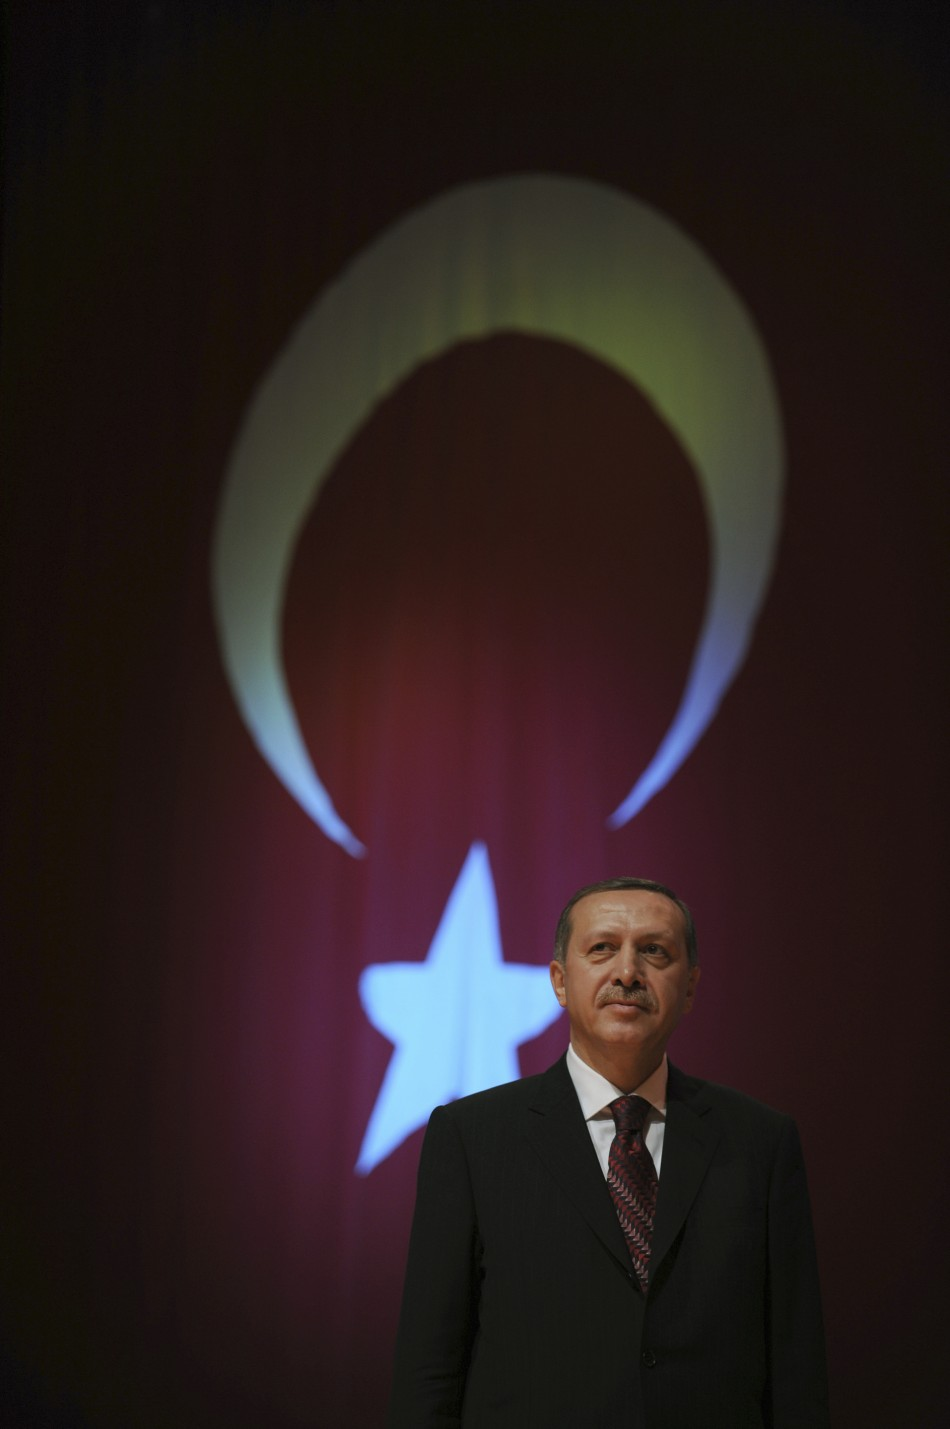 TurkisPrime Minister Recep Tayyip Erdogan standing in front of Turkey's national flag